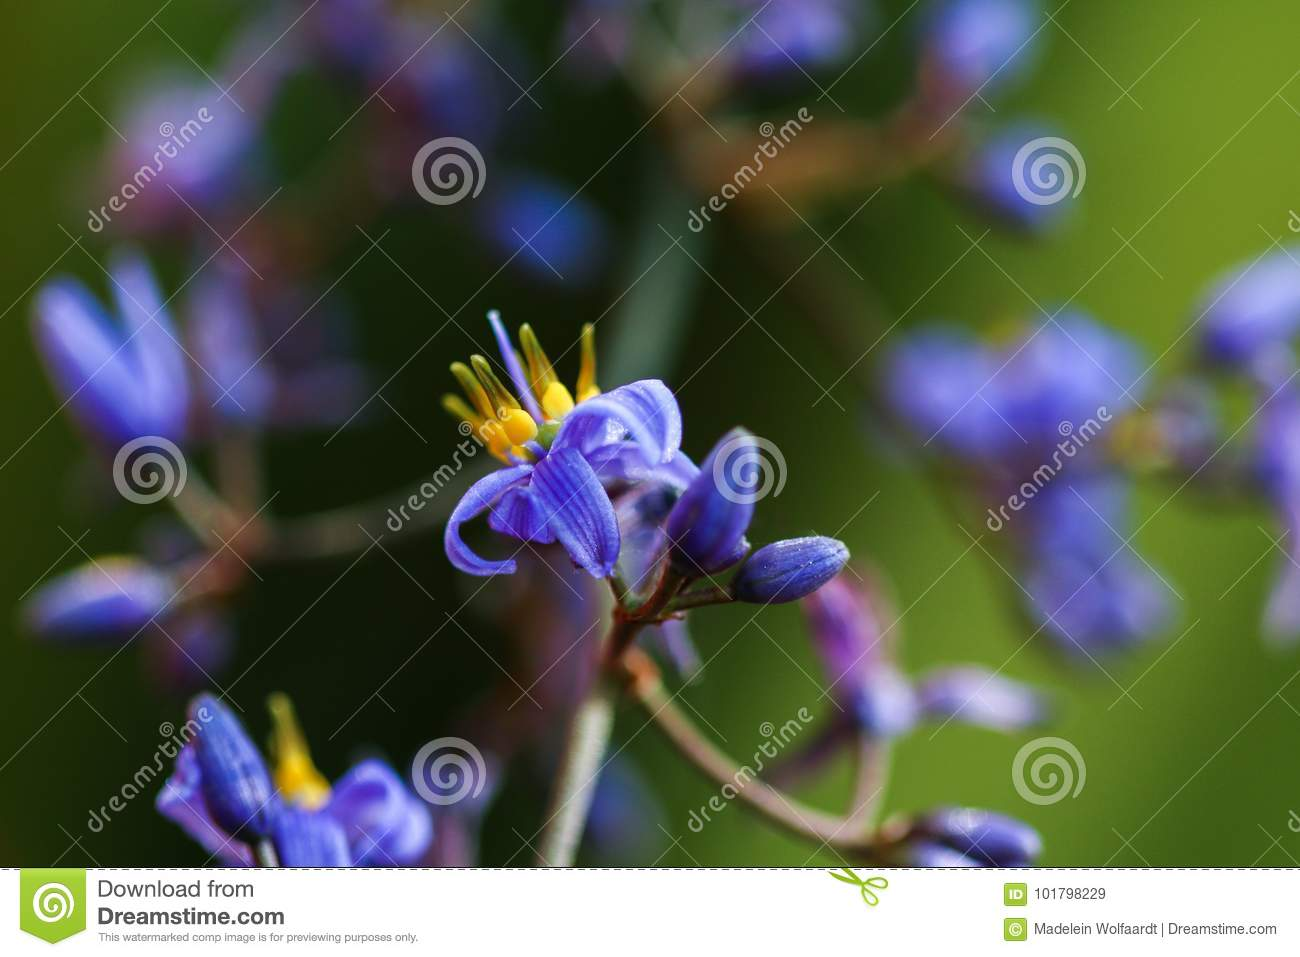 Ornamental Grassy Plant With Small Purple Flowers Stock Image